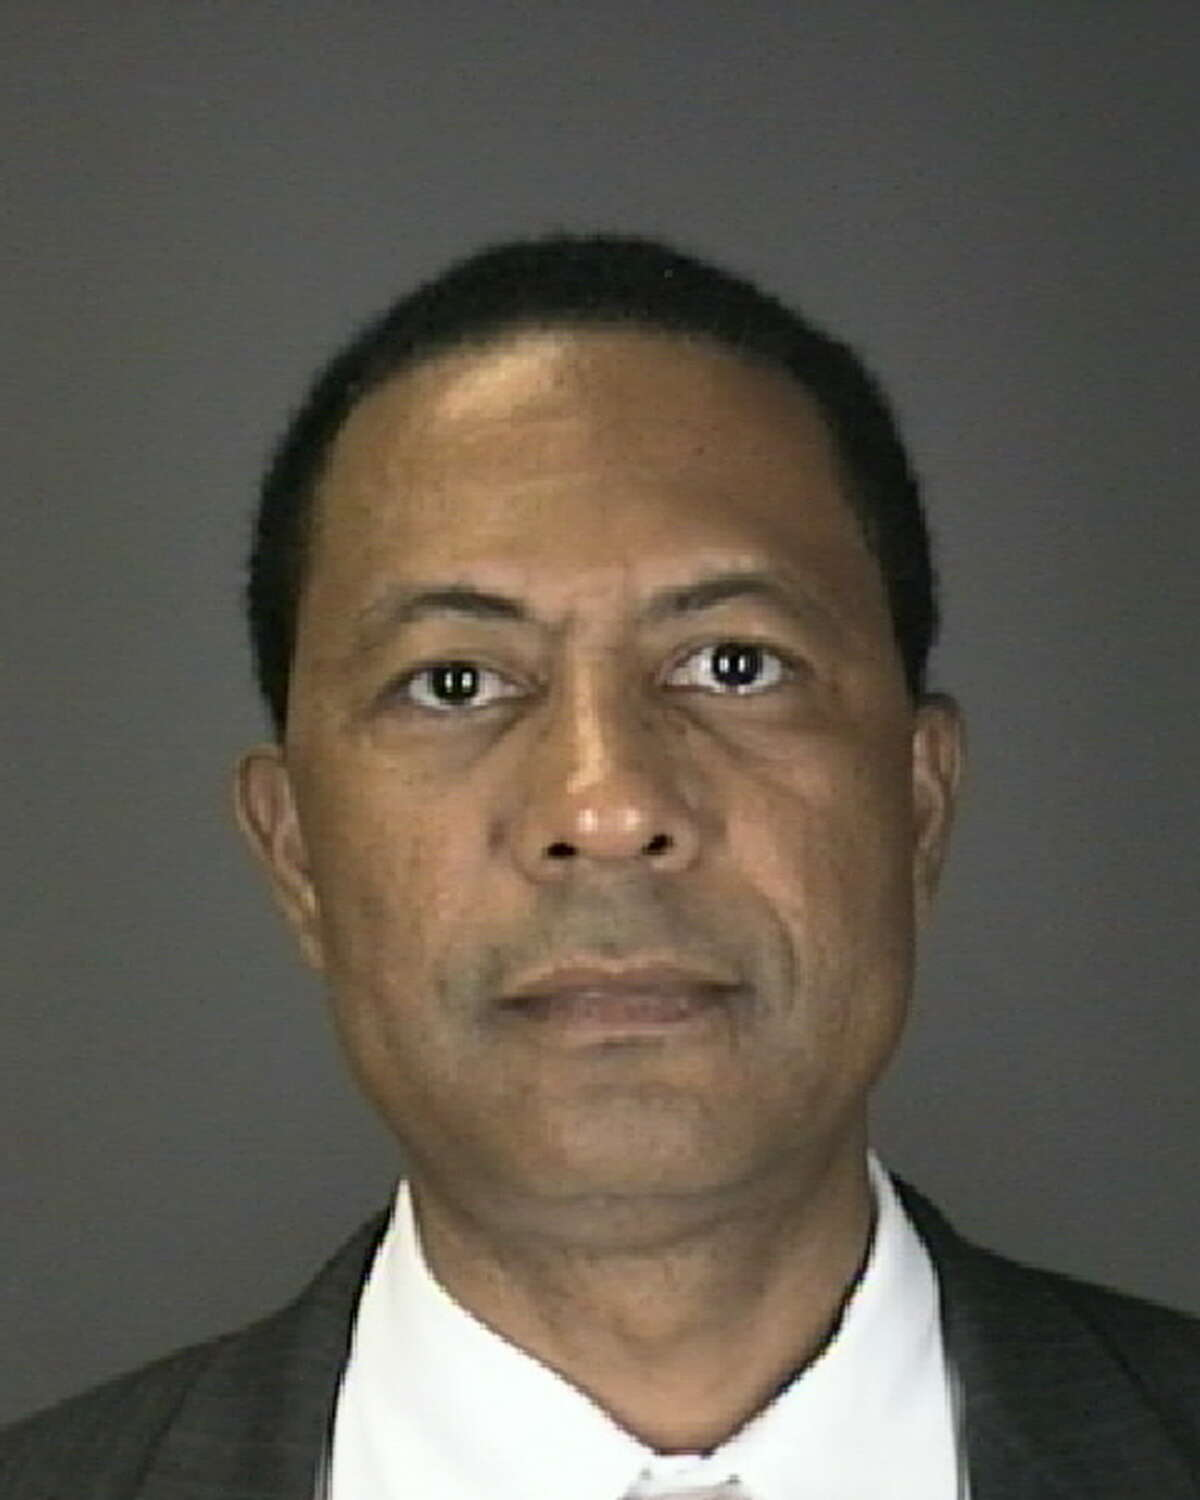 Dr. Kevin George (Photo courtesy of Colonie Police Department)